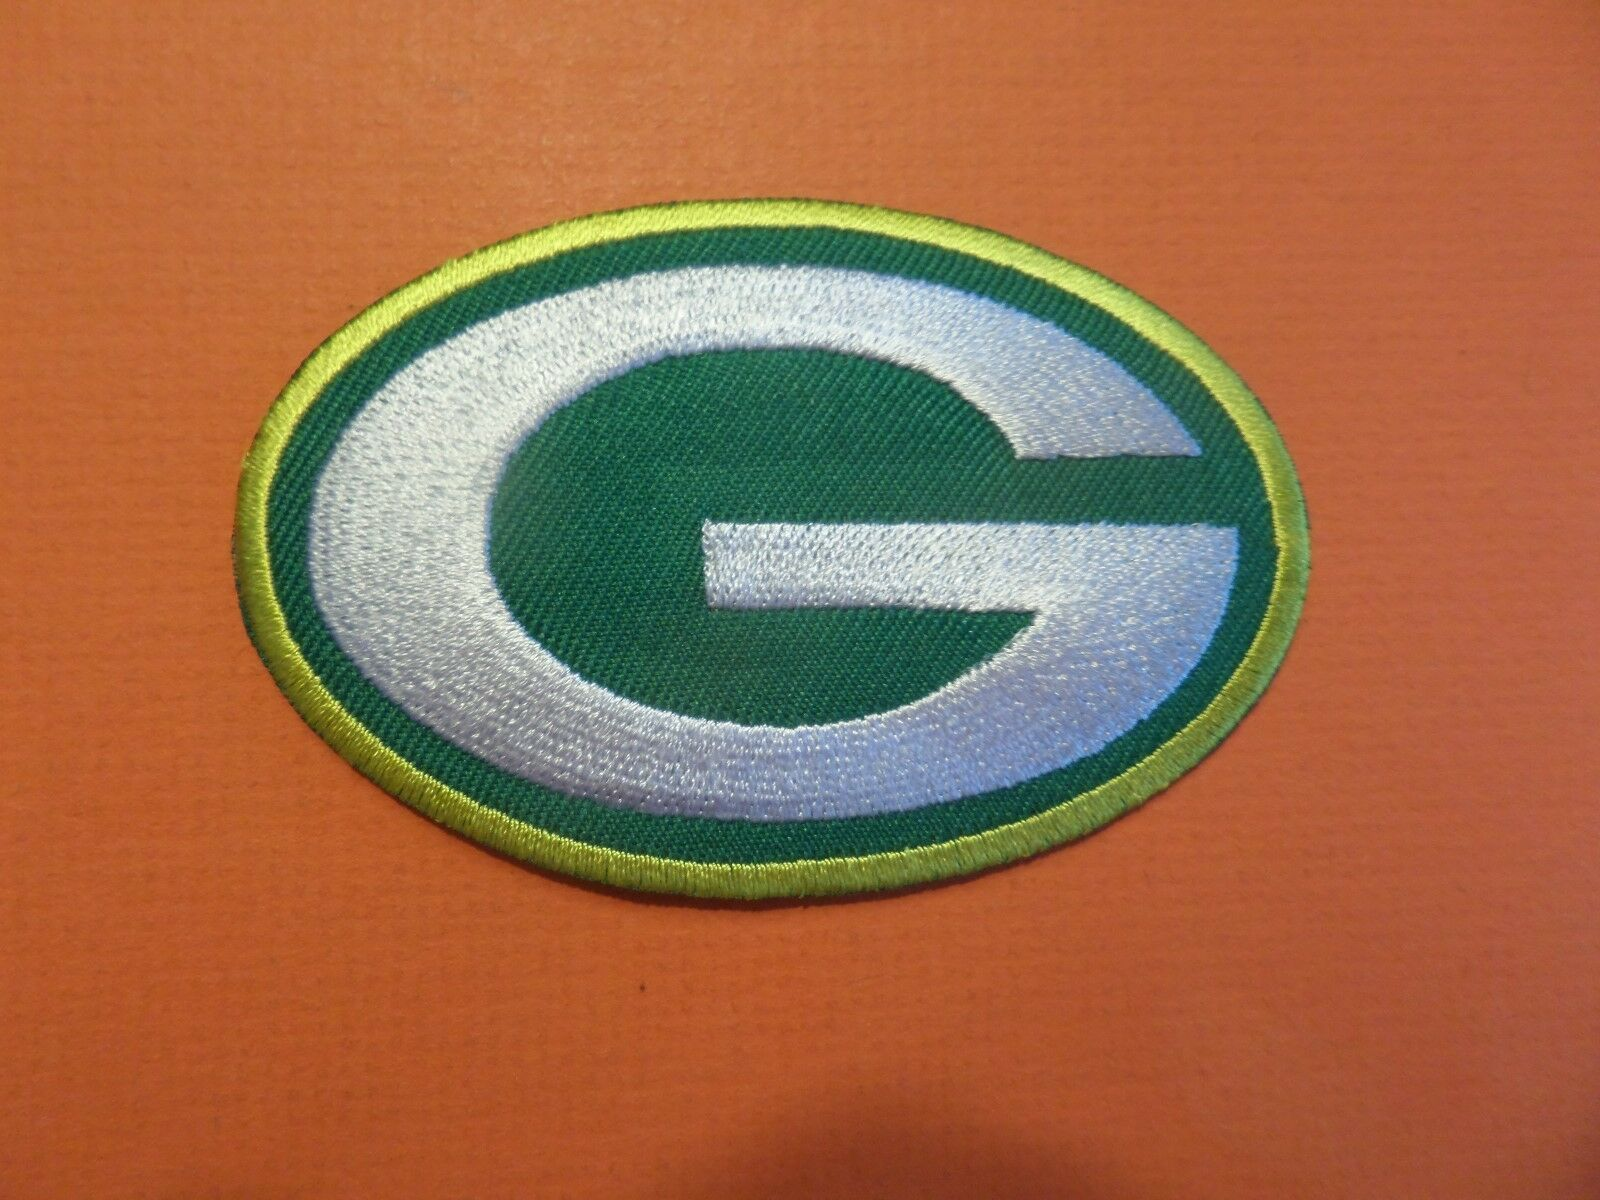 GREEN BAY PACKERS YELLOW & GREEN EMBROIDERED IRON ON PATCHES